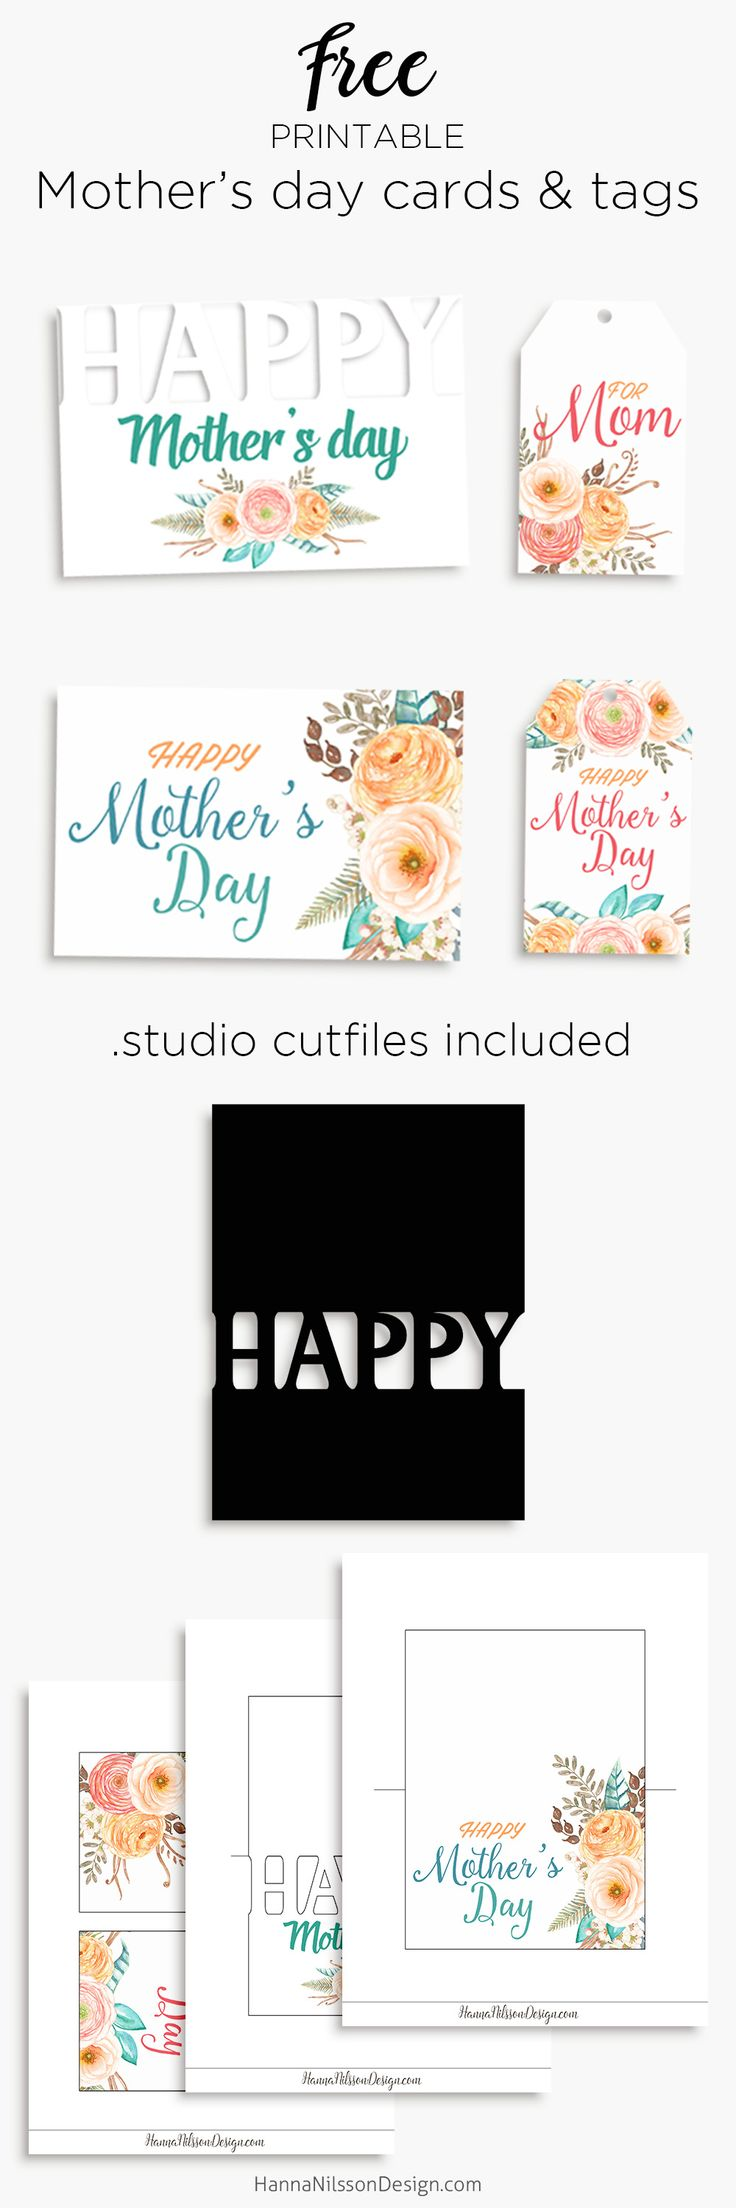 happy mother 39 s day printable cards and tags to celebrate your mom studio print and cut file. Black Bedroom Furniture Sets. Home Design Ideas